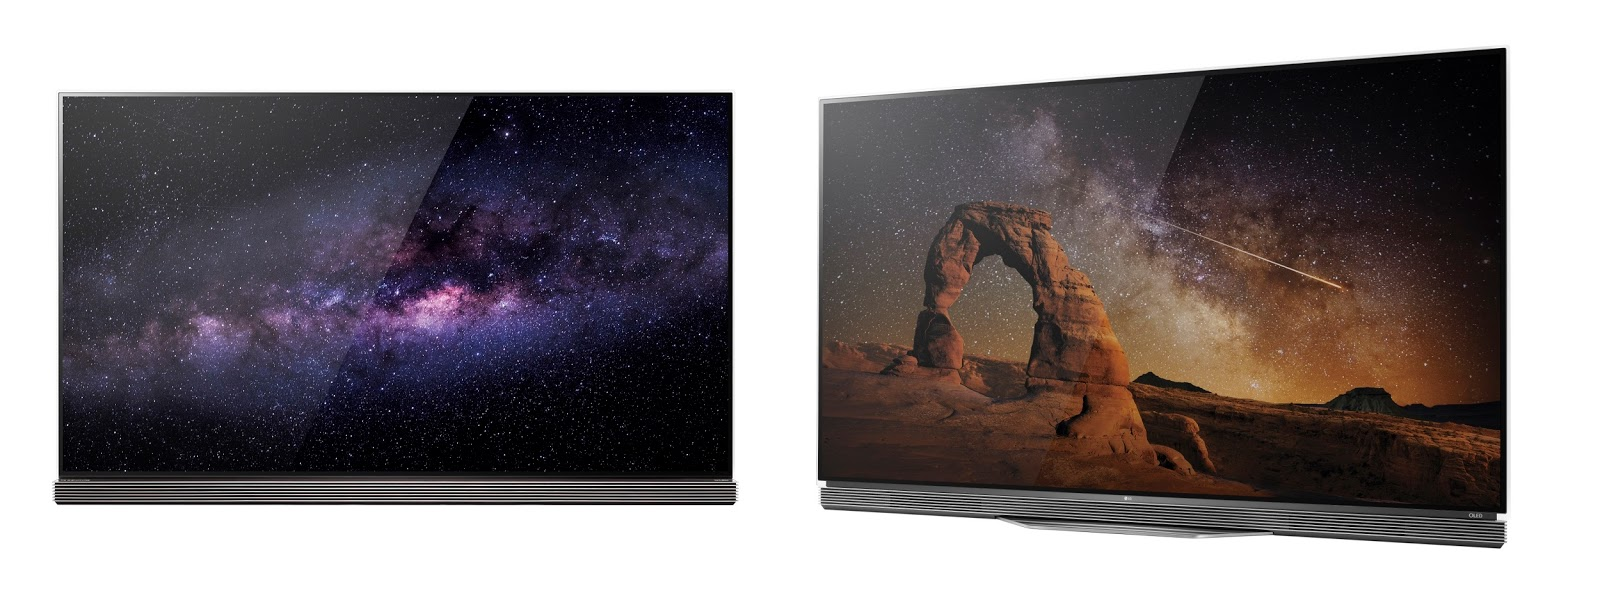 LG OLED TV E6 and G6 revealed at CES 2016